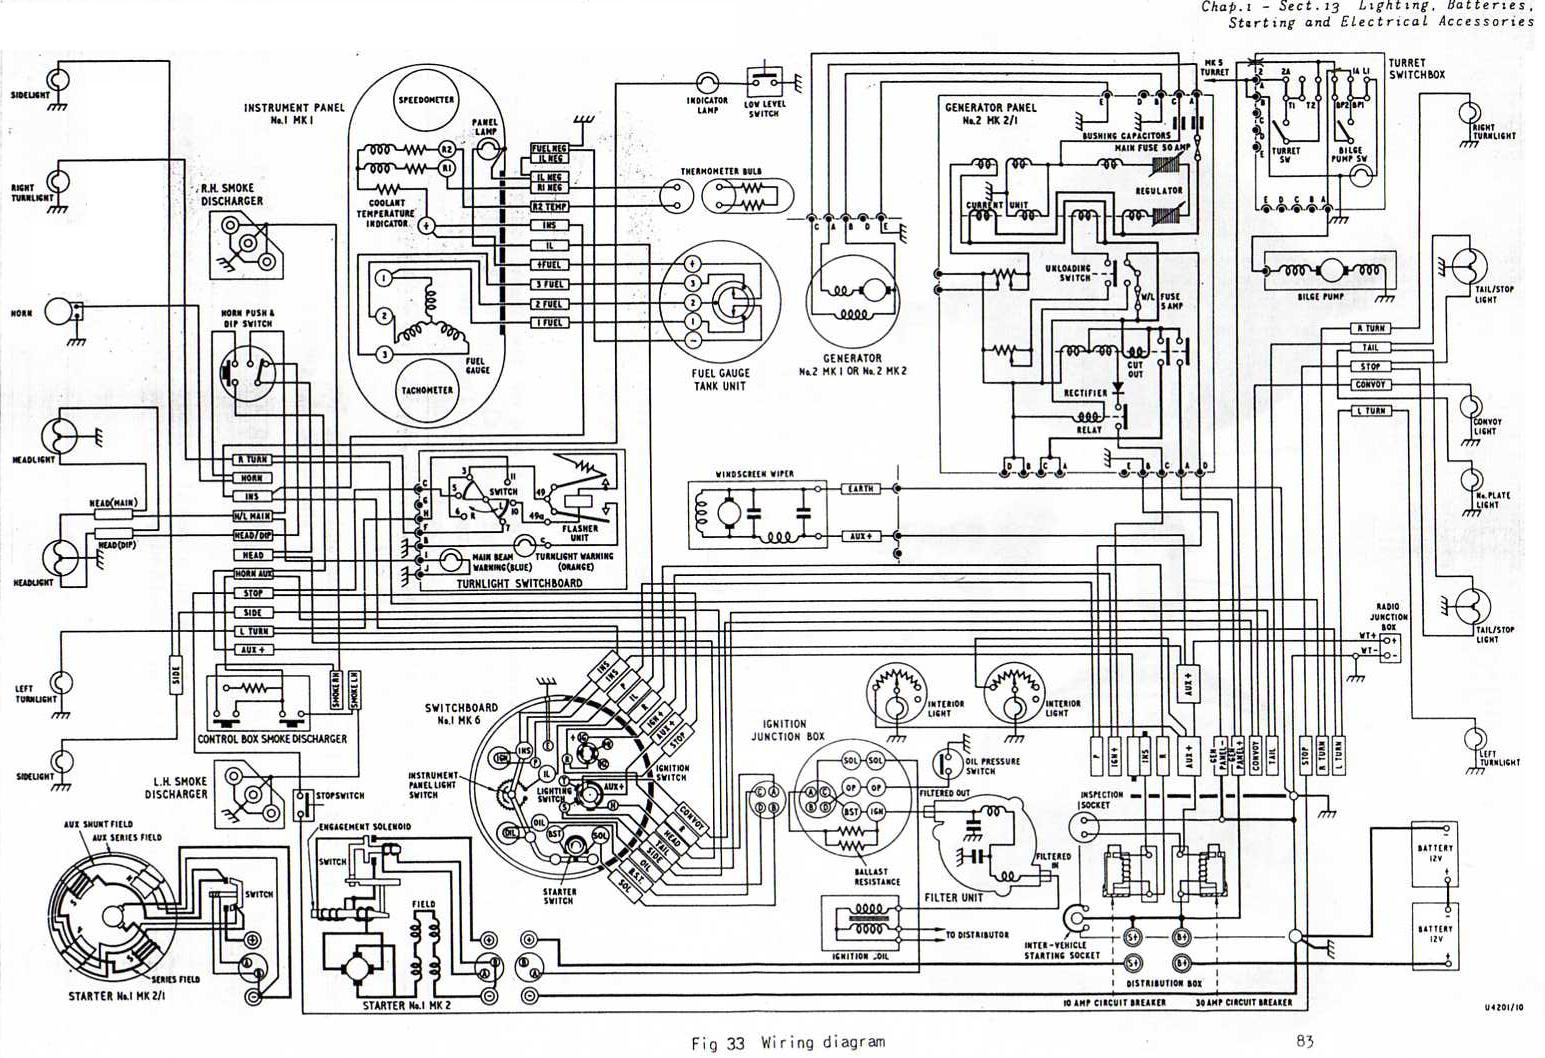 similiar 1969 camaro wiring diagram keywords wiring diagram together camaro wiring diagram on 1969 camaro